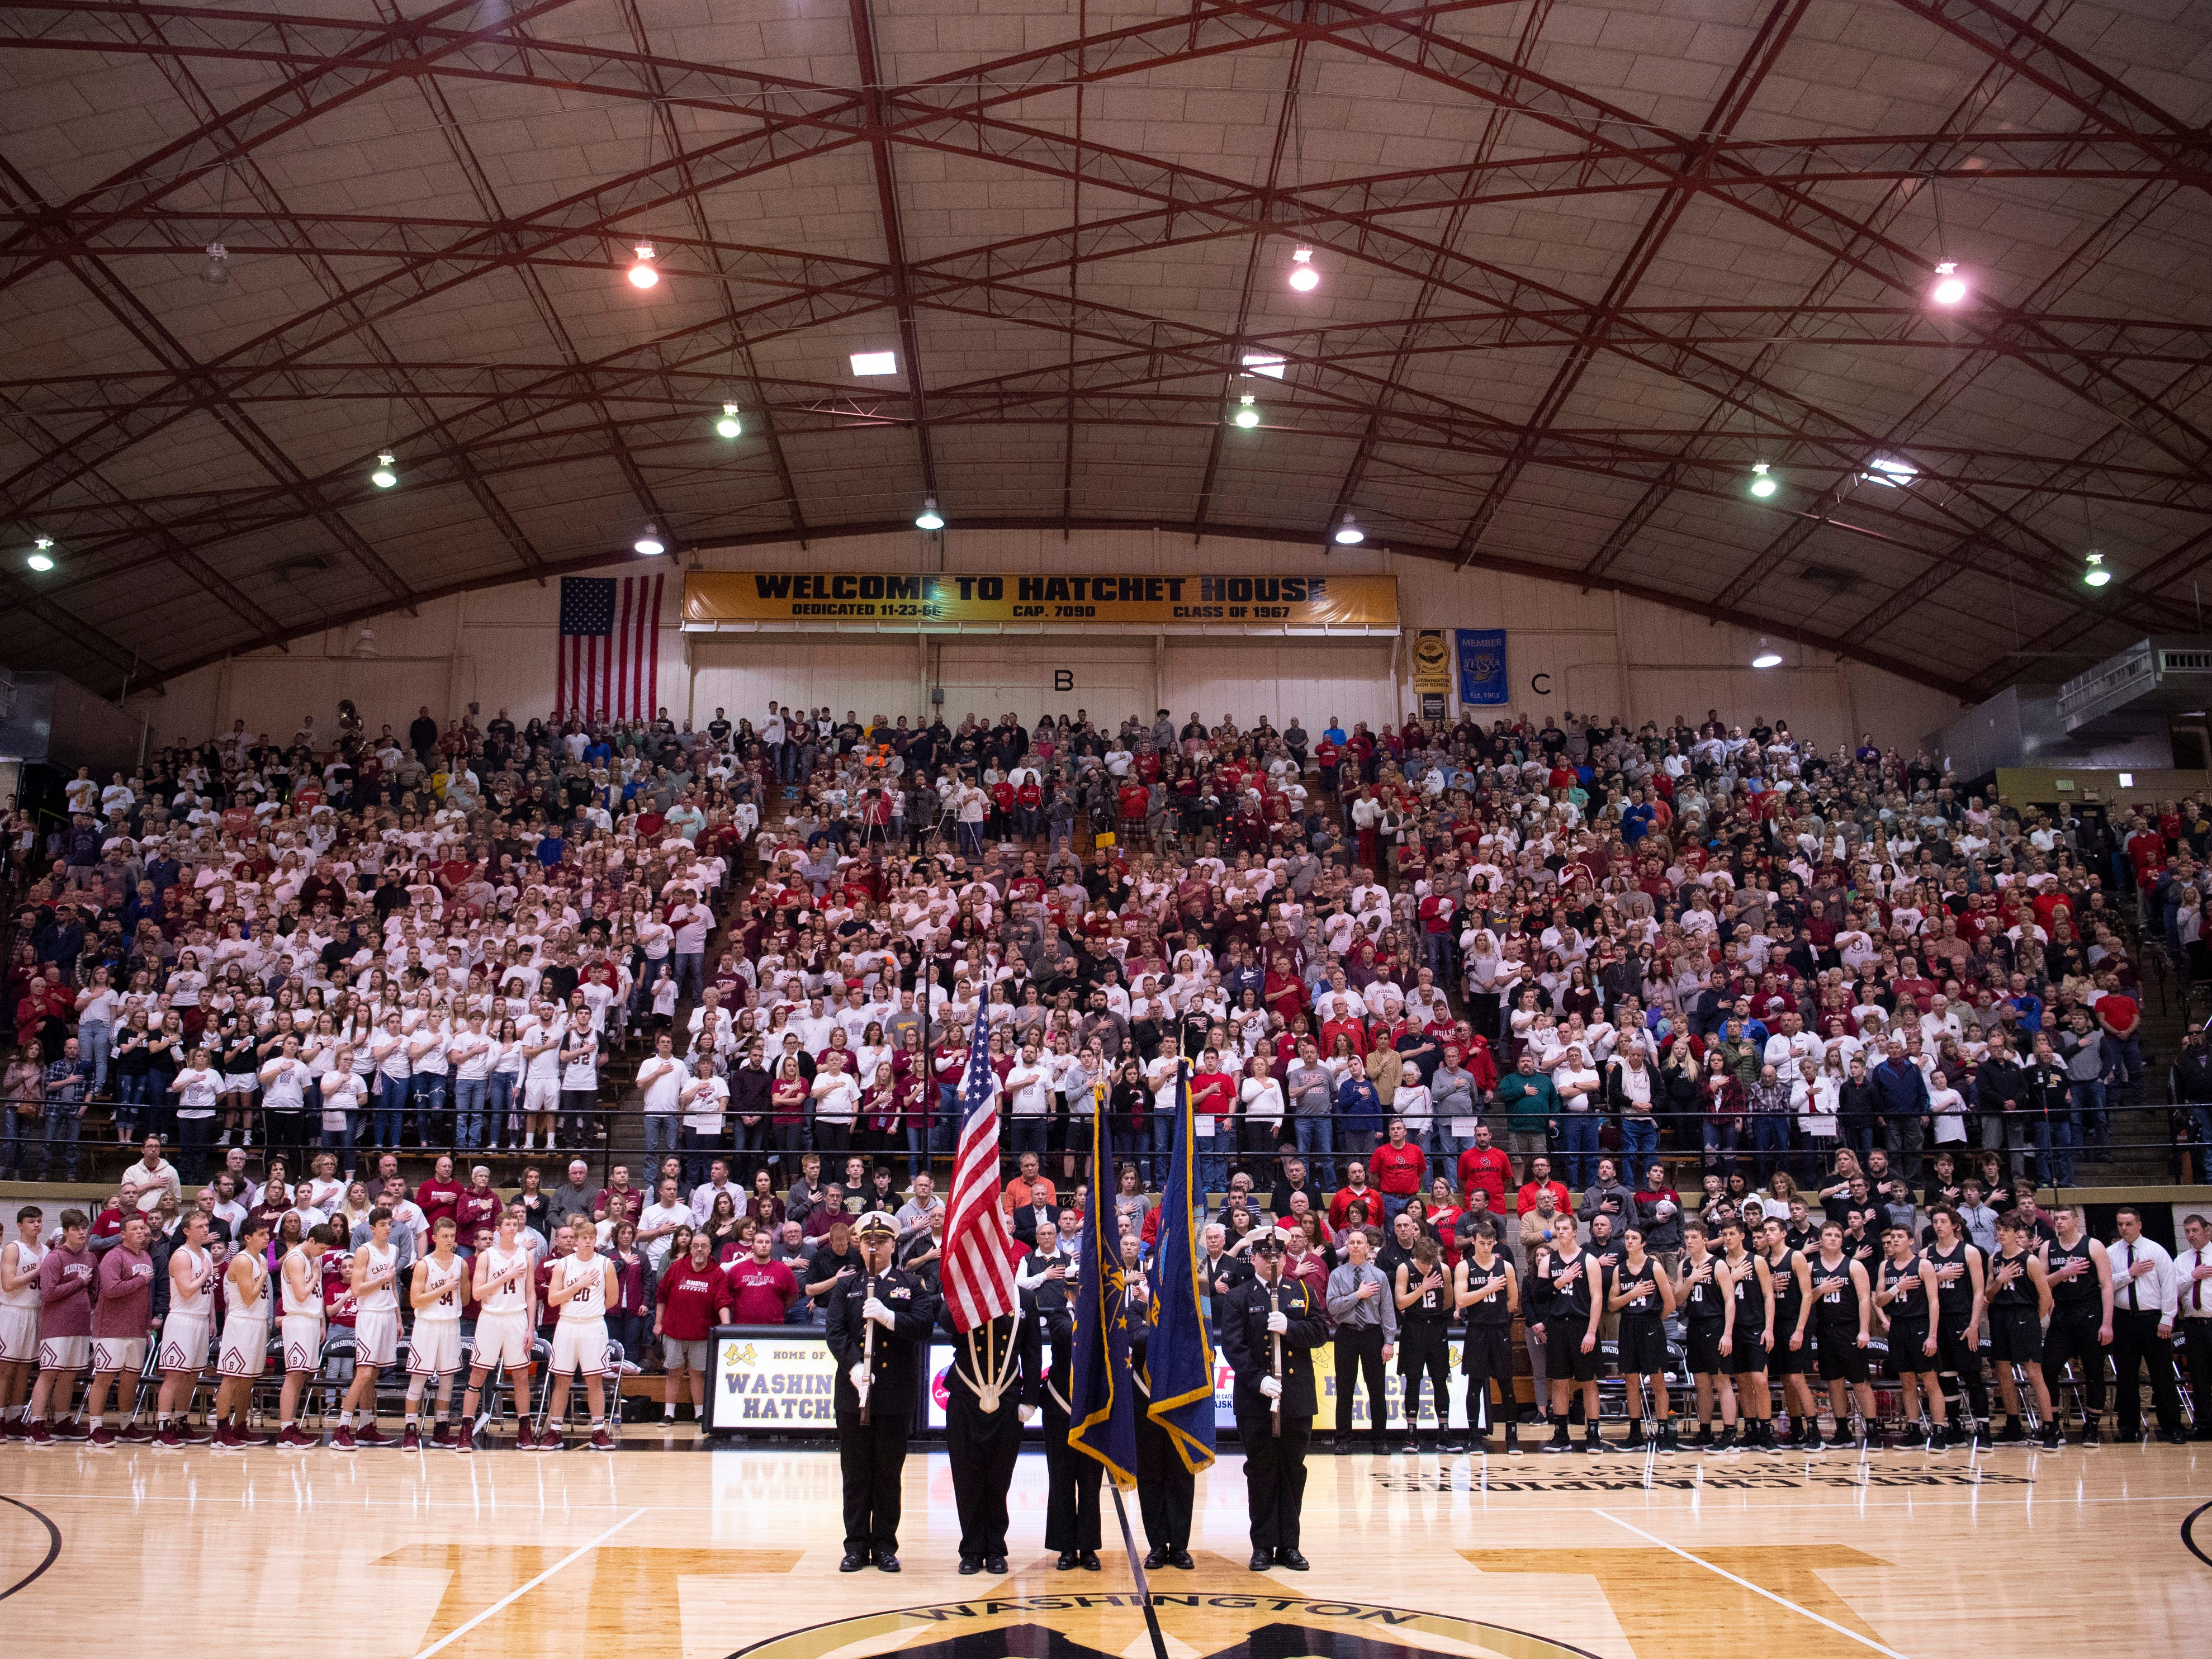 The Junior ROTC color guard displays the colors before the  start of the 1A Boys Indiana Semi-State Basketball Tournament at the Hatchet House in Washington, Ind., Saturday afternoon. Barr-Reeve beat Bloomfield to advance to the state championship game.